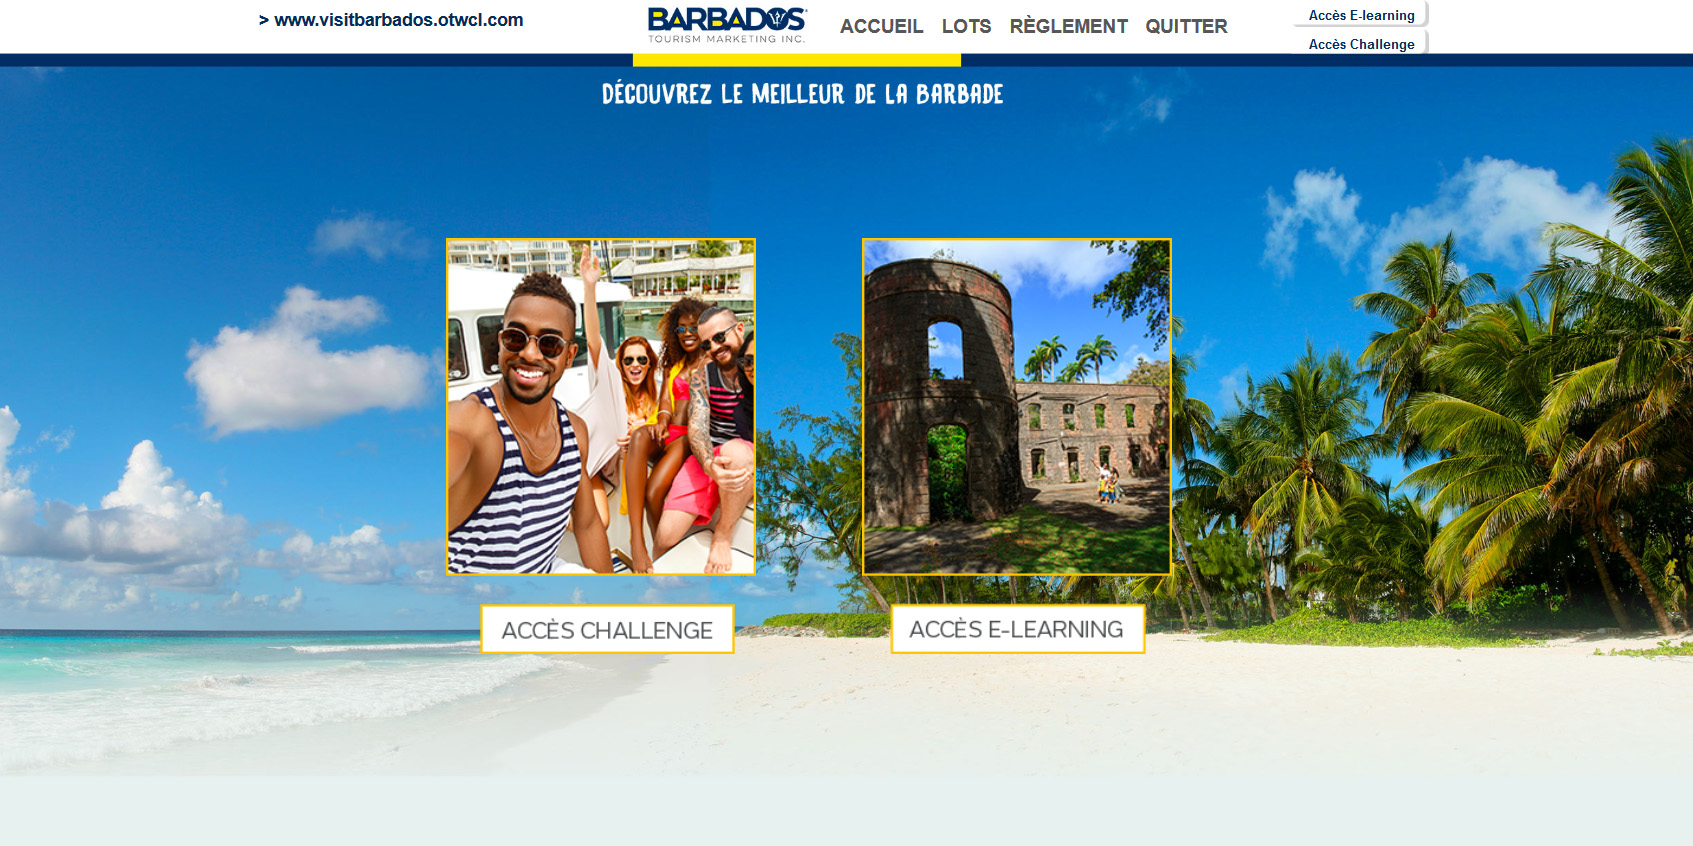 L'E-learning de l'Office de Tourisme de la Barbade - DR